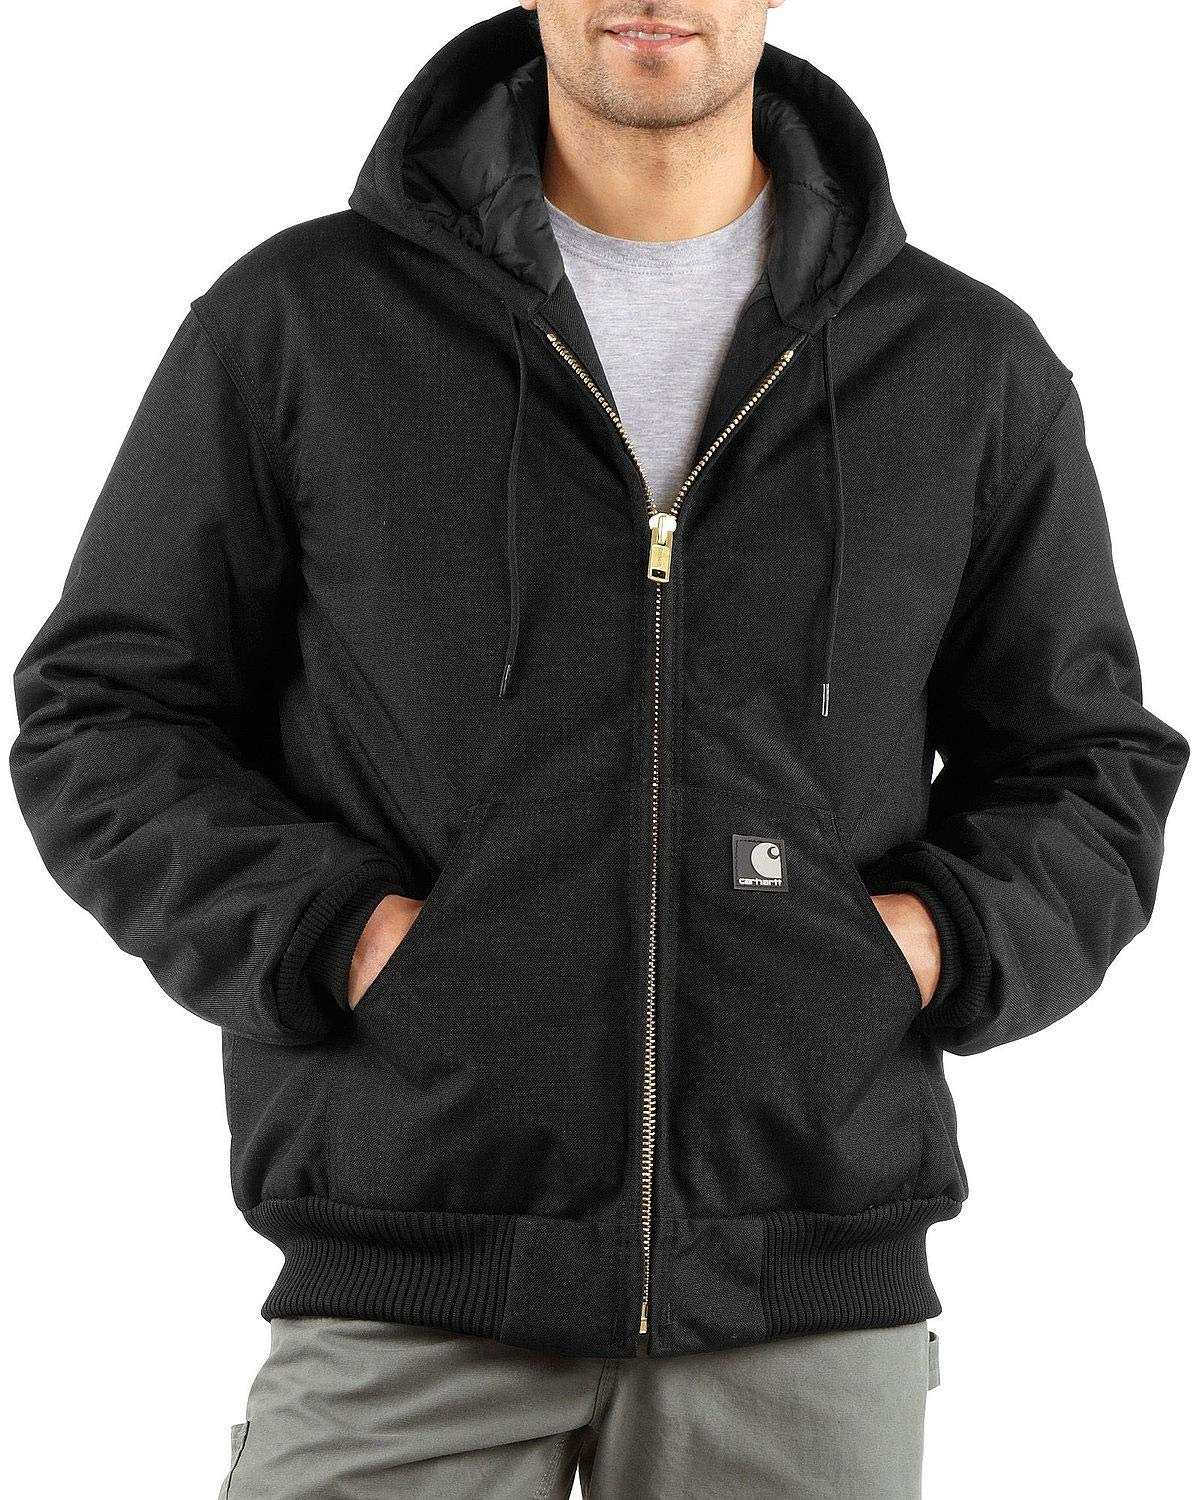 Carhartt Men's Arctic Quilt Lined Yukon Active Jacket,Black,Large by Carhartt